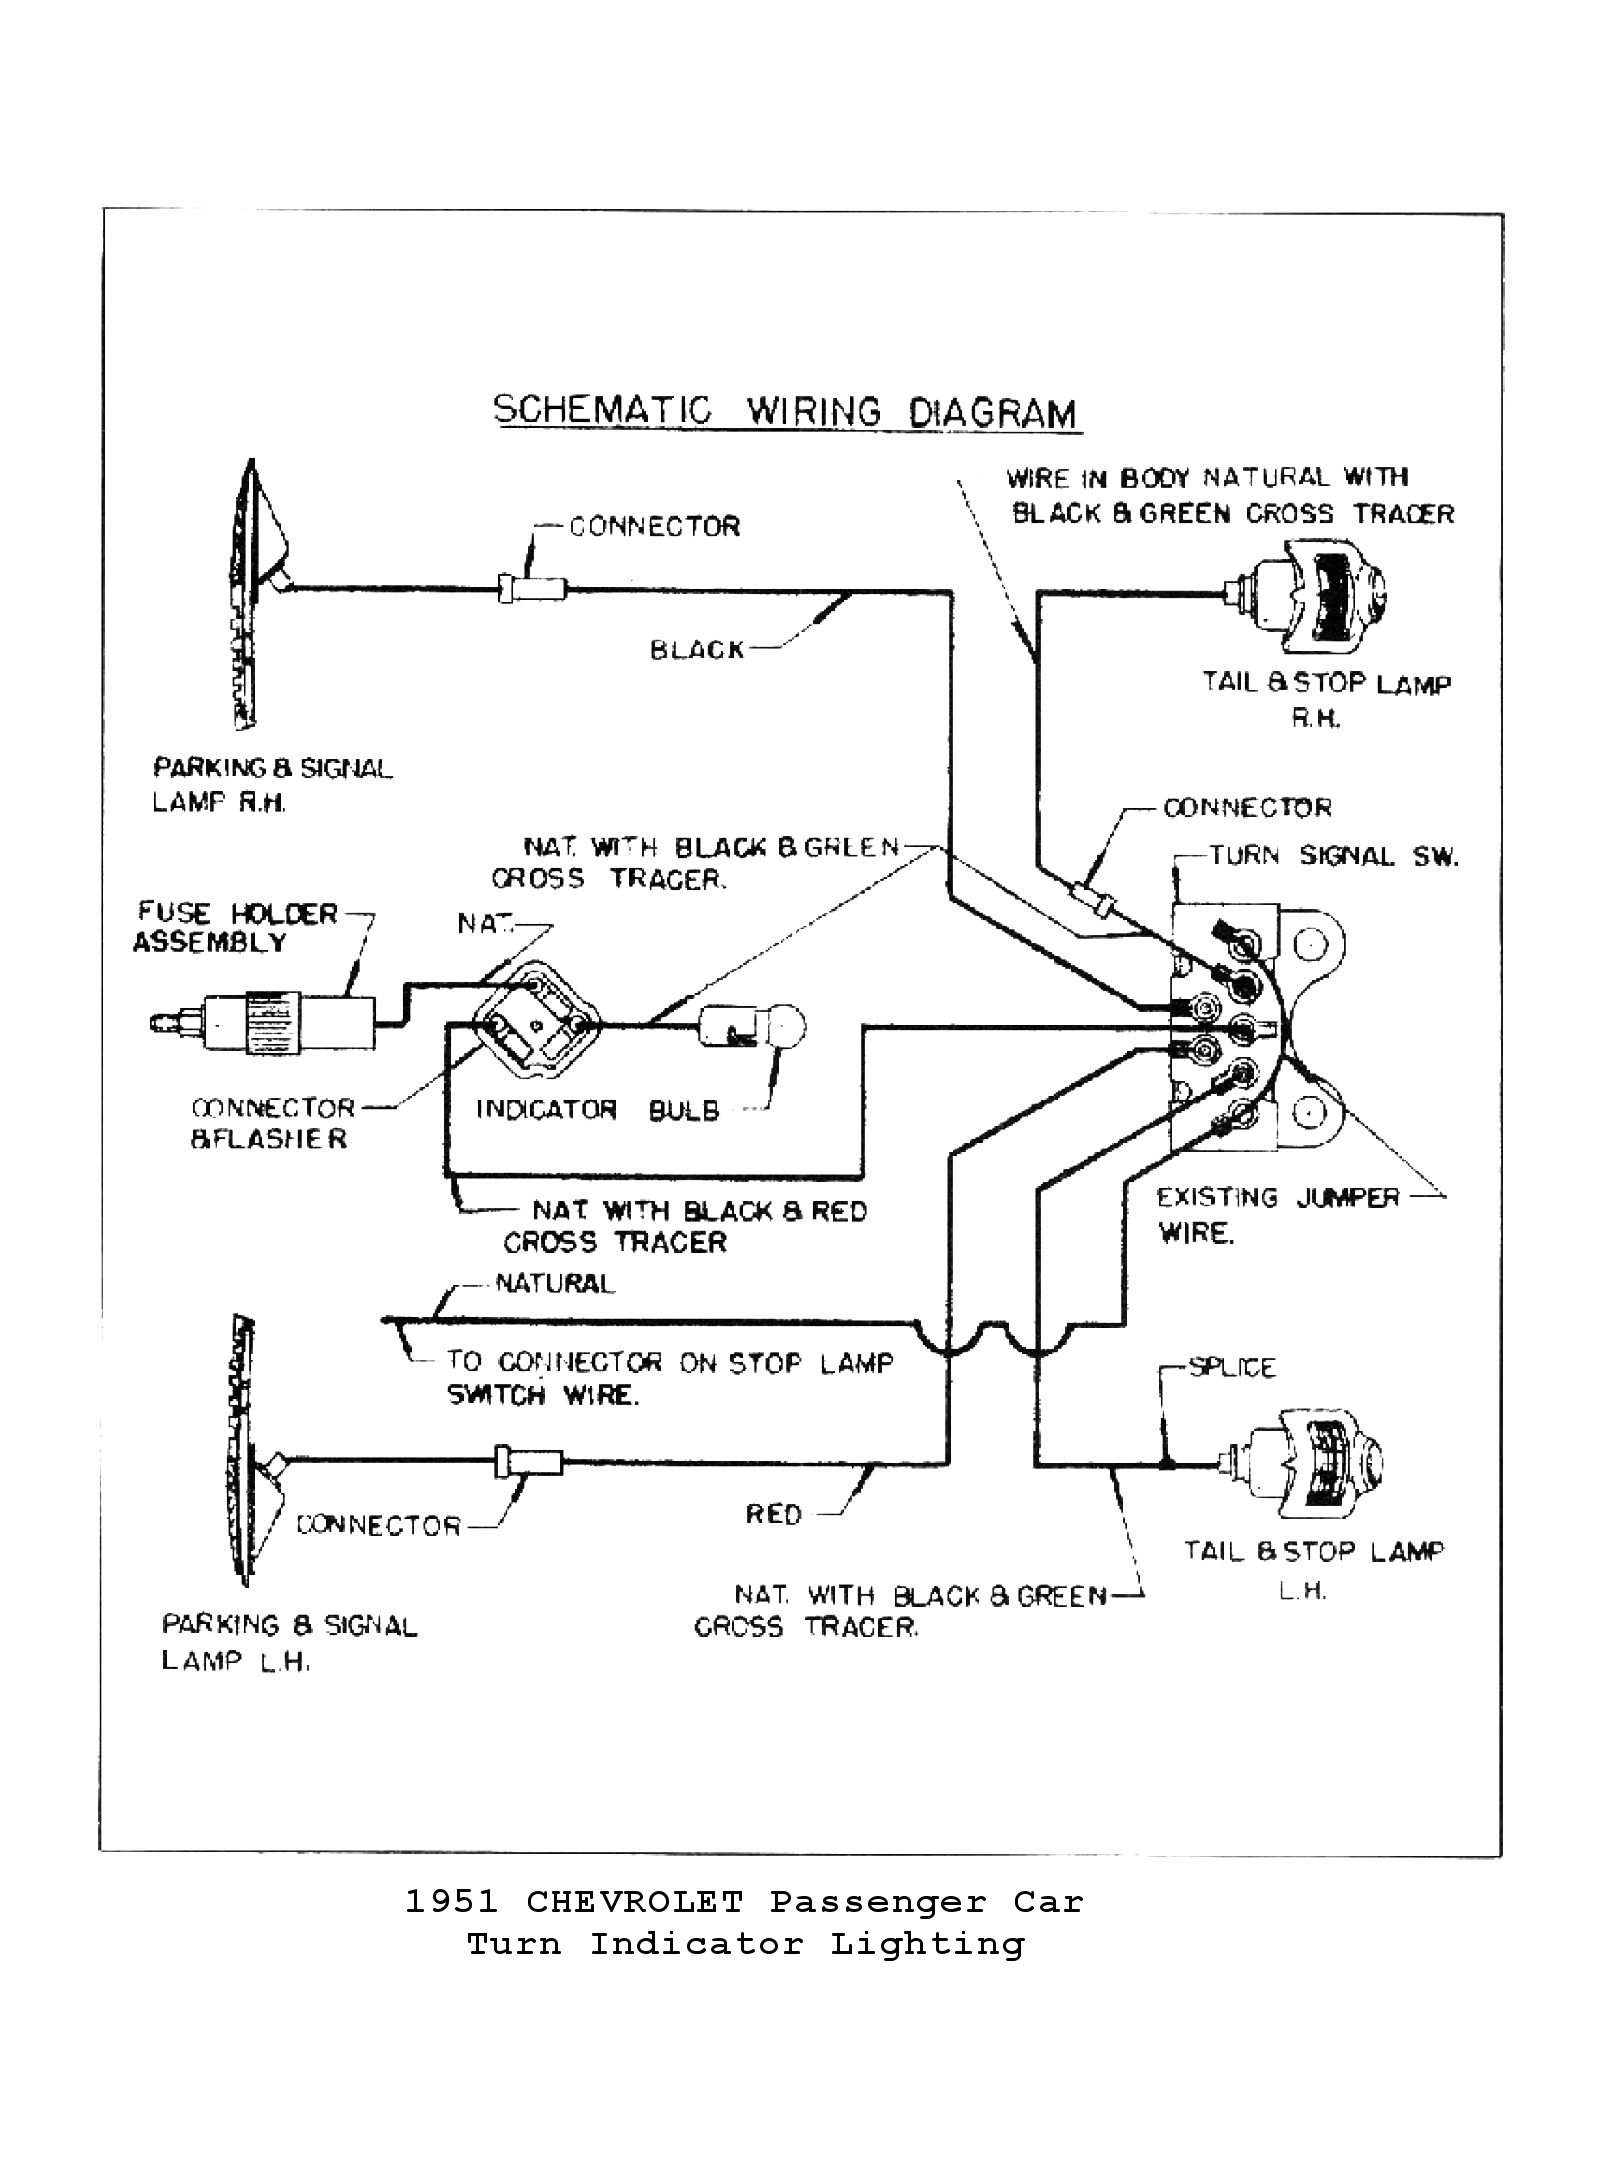 5152turnsignals chevy wiring diagrams Basic Turn Signal Wiring Diagram at arjmand.co